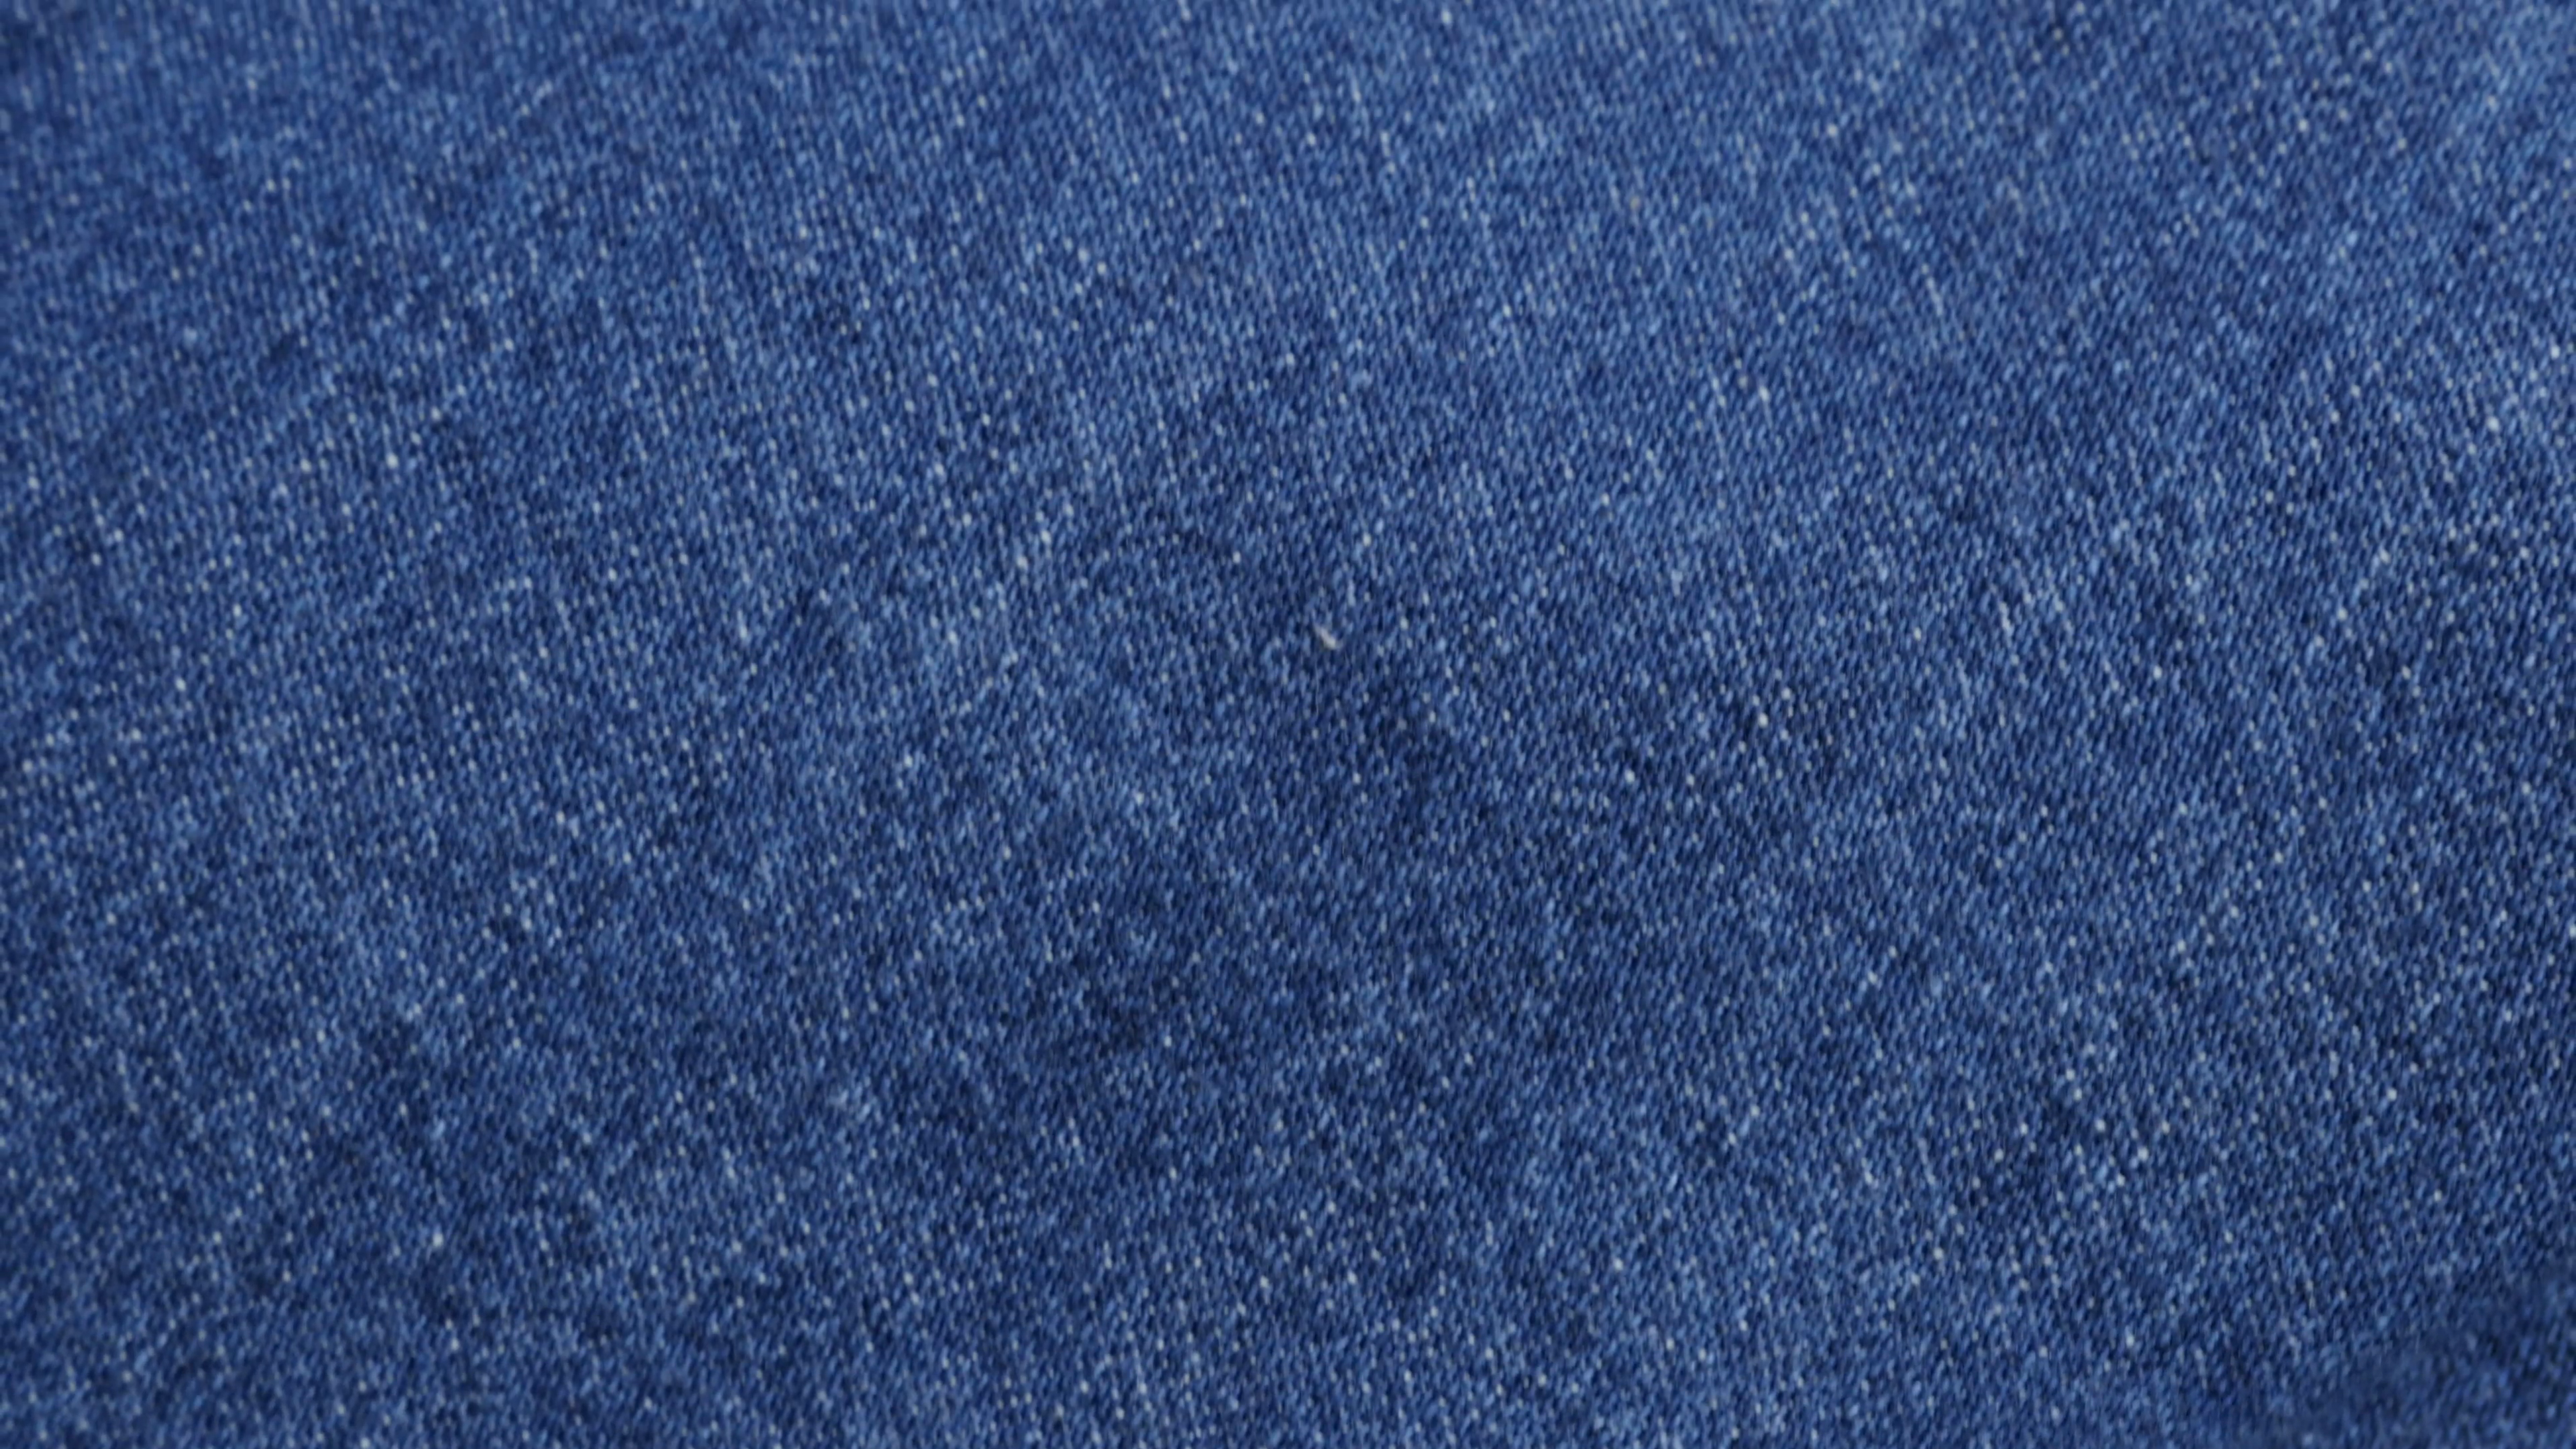 Clothing fabric of blue high quality denim details and texture tilting 4K  2160p 30fps UltraHD video.